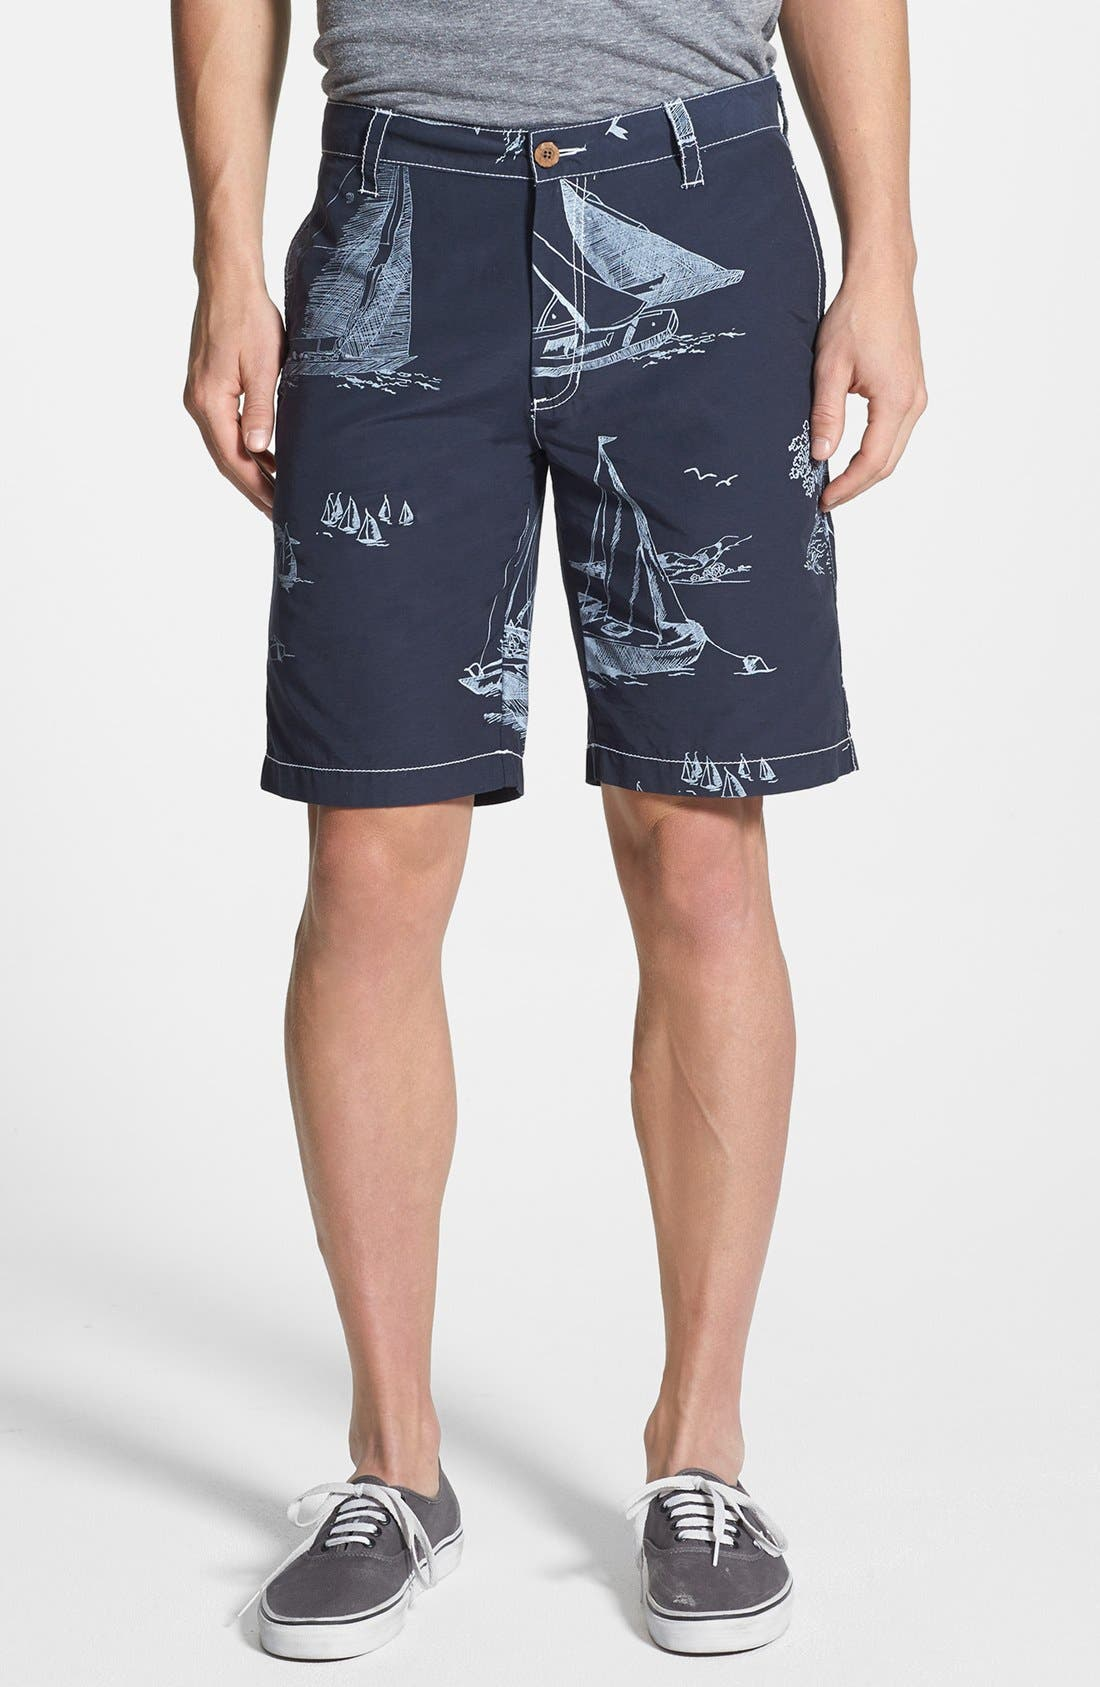 Alternate Image 1 Selected - Tailor Vintage Sailboat Print Hybrid Shorts